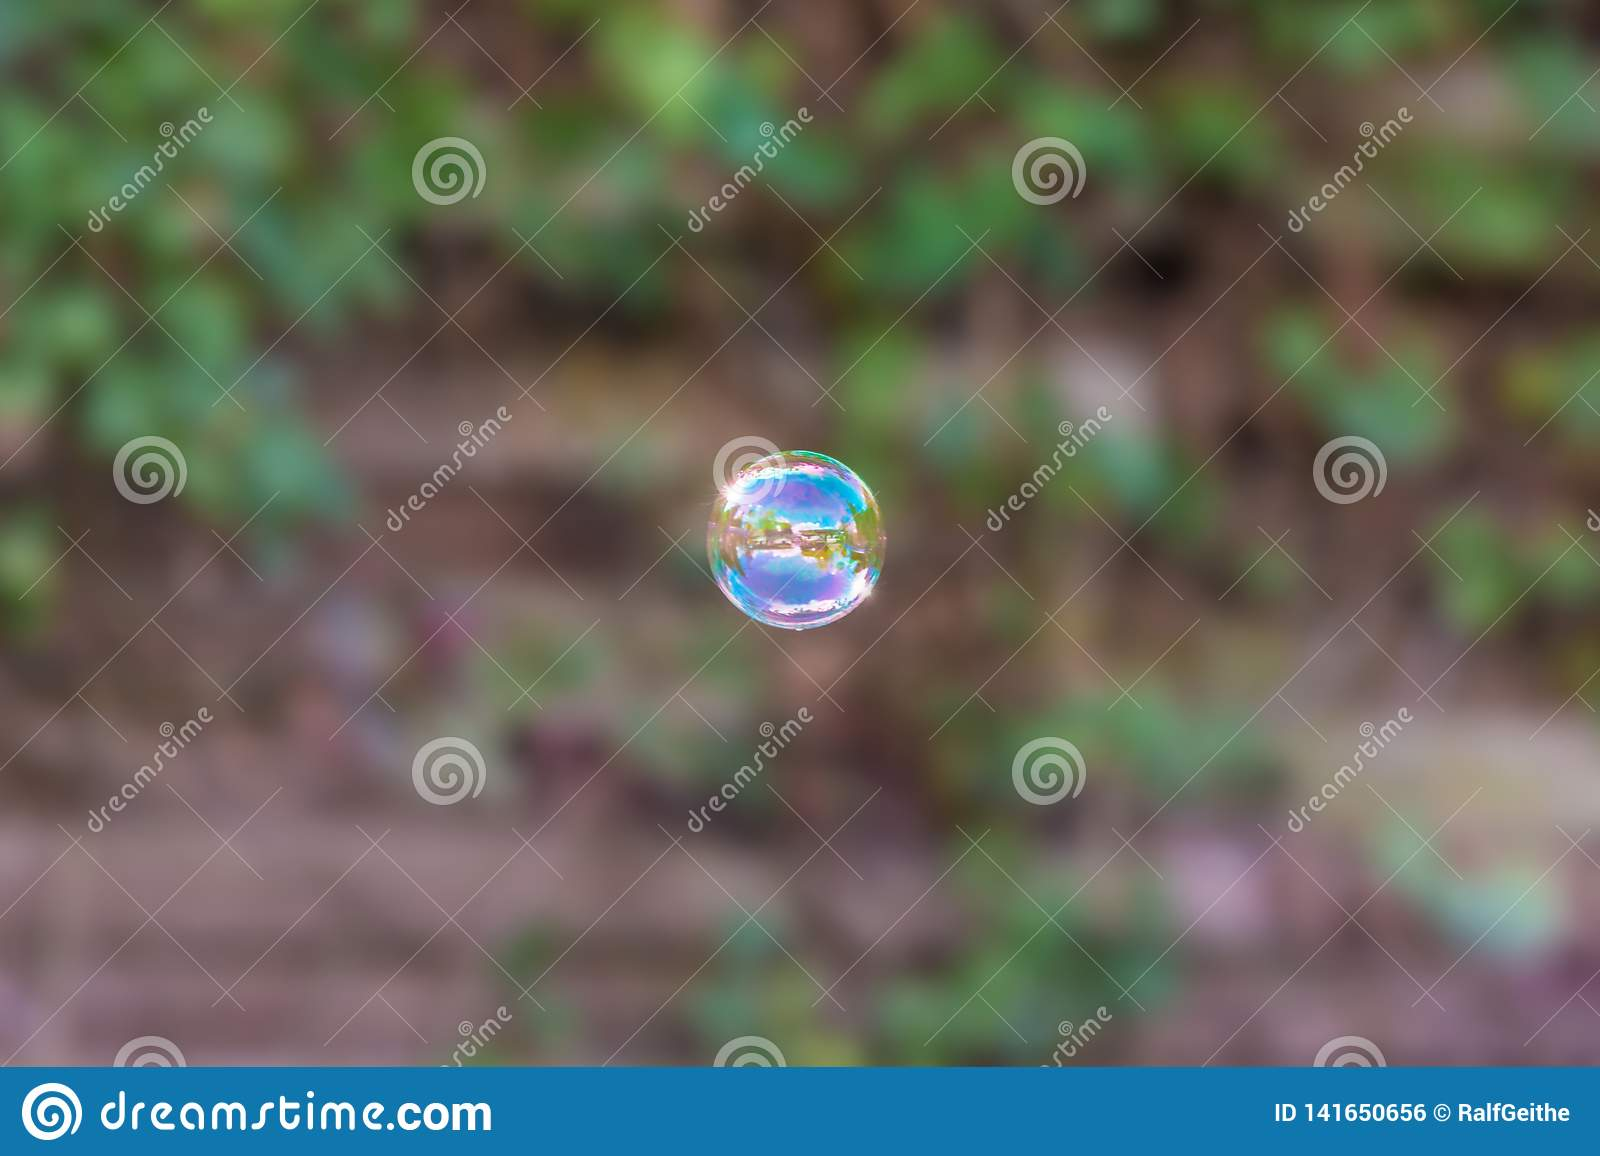 Single soap bubble in front of overgrown garden fence